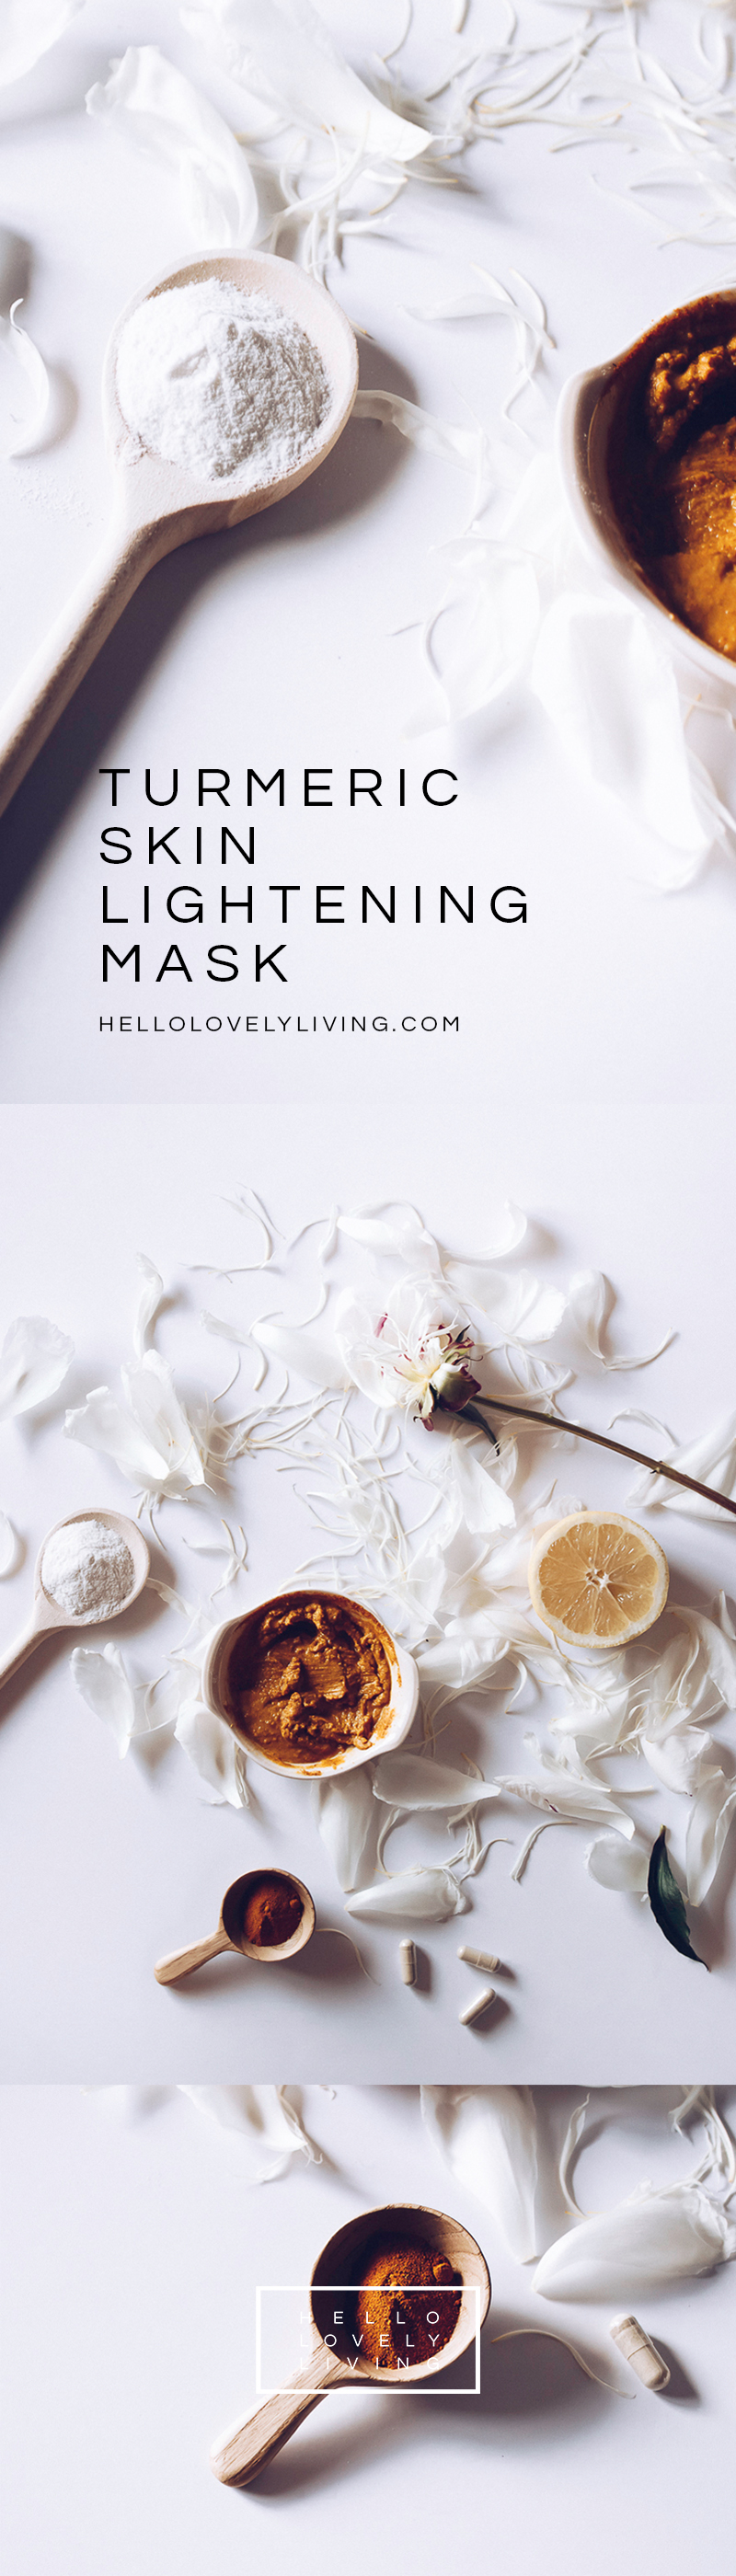 HELLOLOVELYLIVING.COM | DIY Turmeric Skin Lightening Mask